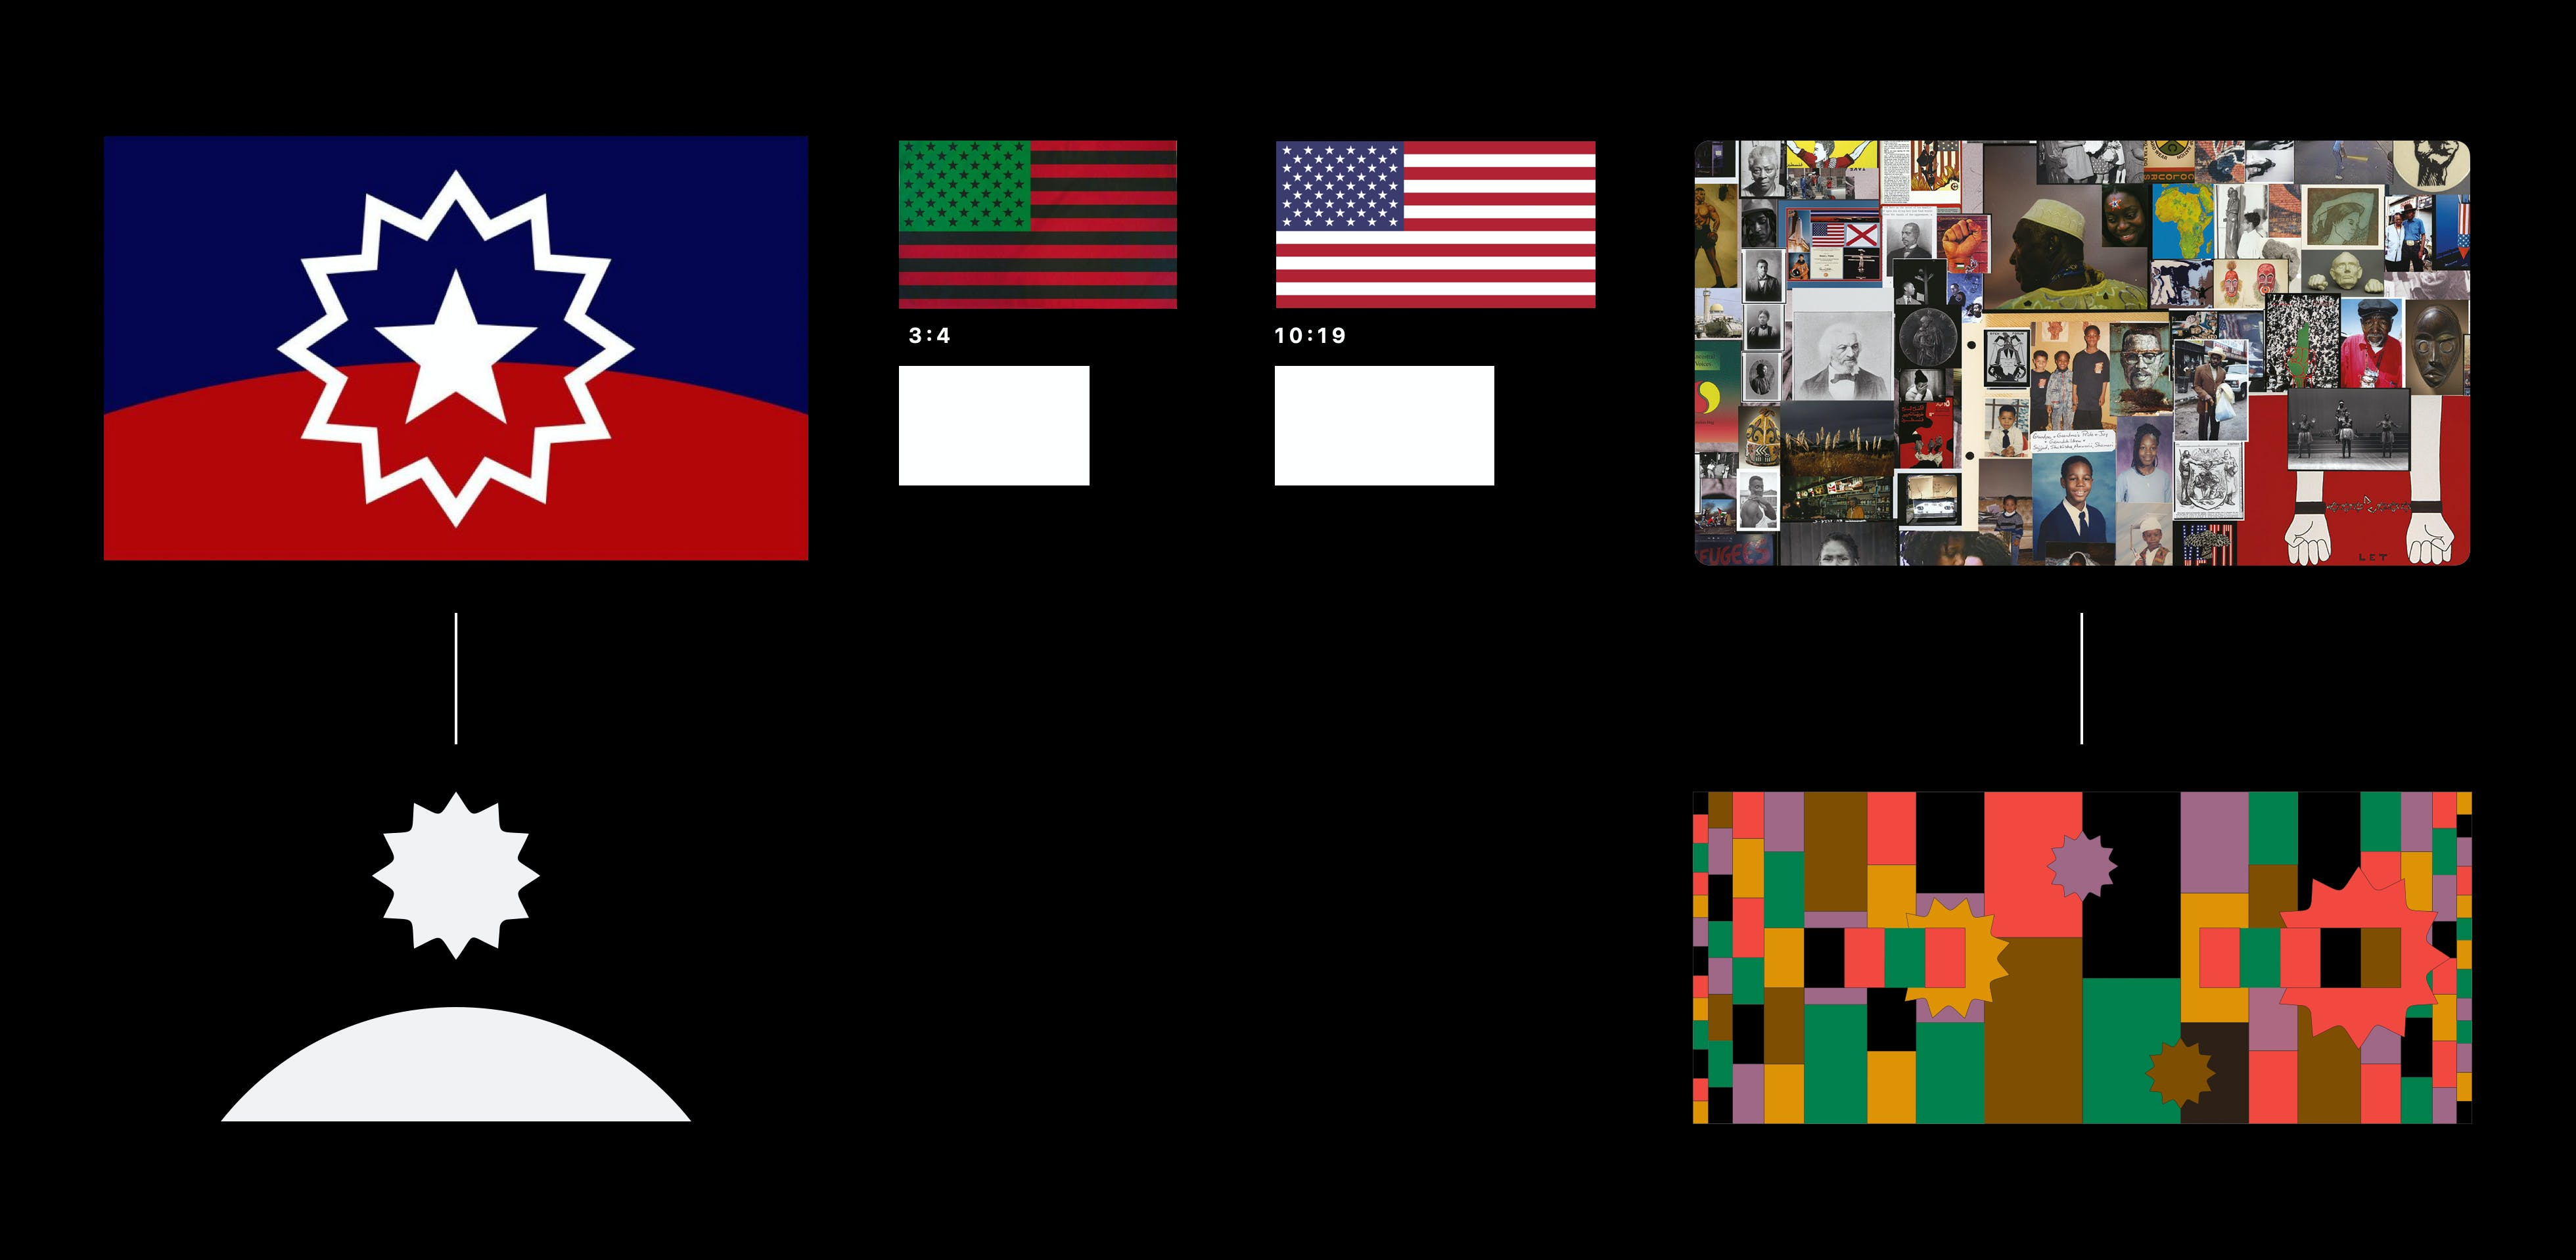 Image of the Juneteenth flag (star & horizon shape) elements deconstructed into graphics. Along with the ratios of the Black American flag and American National Flag used as tiles.